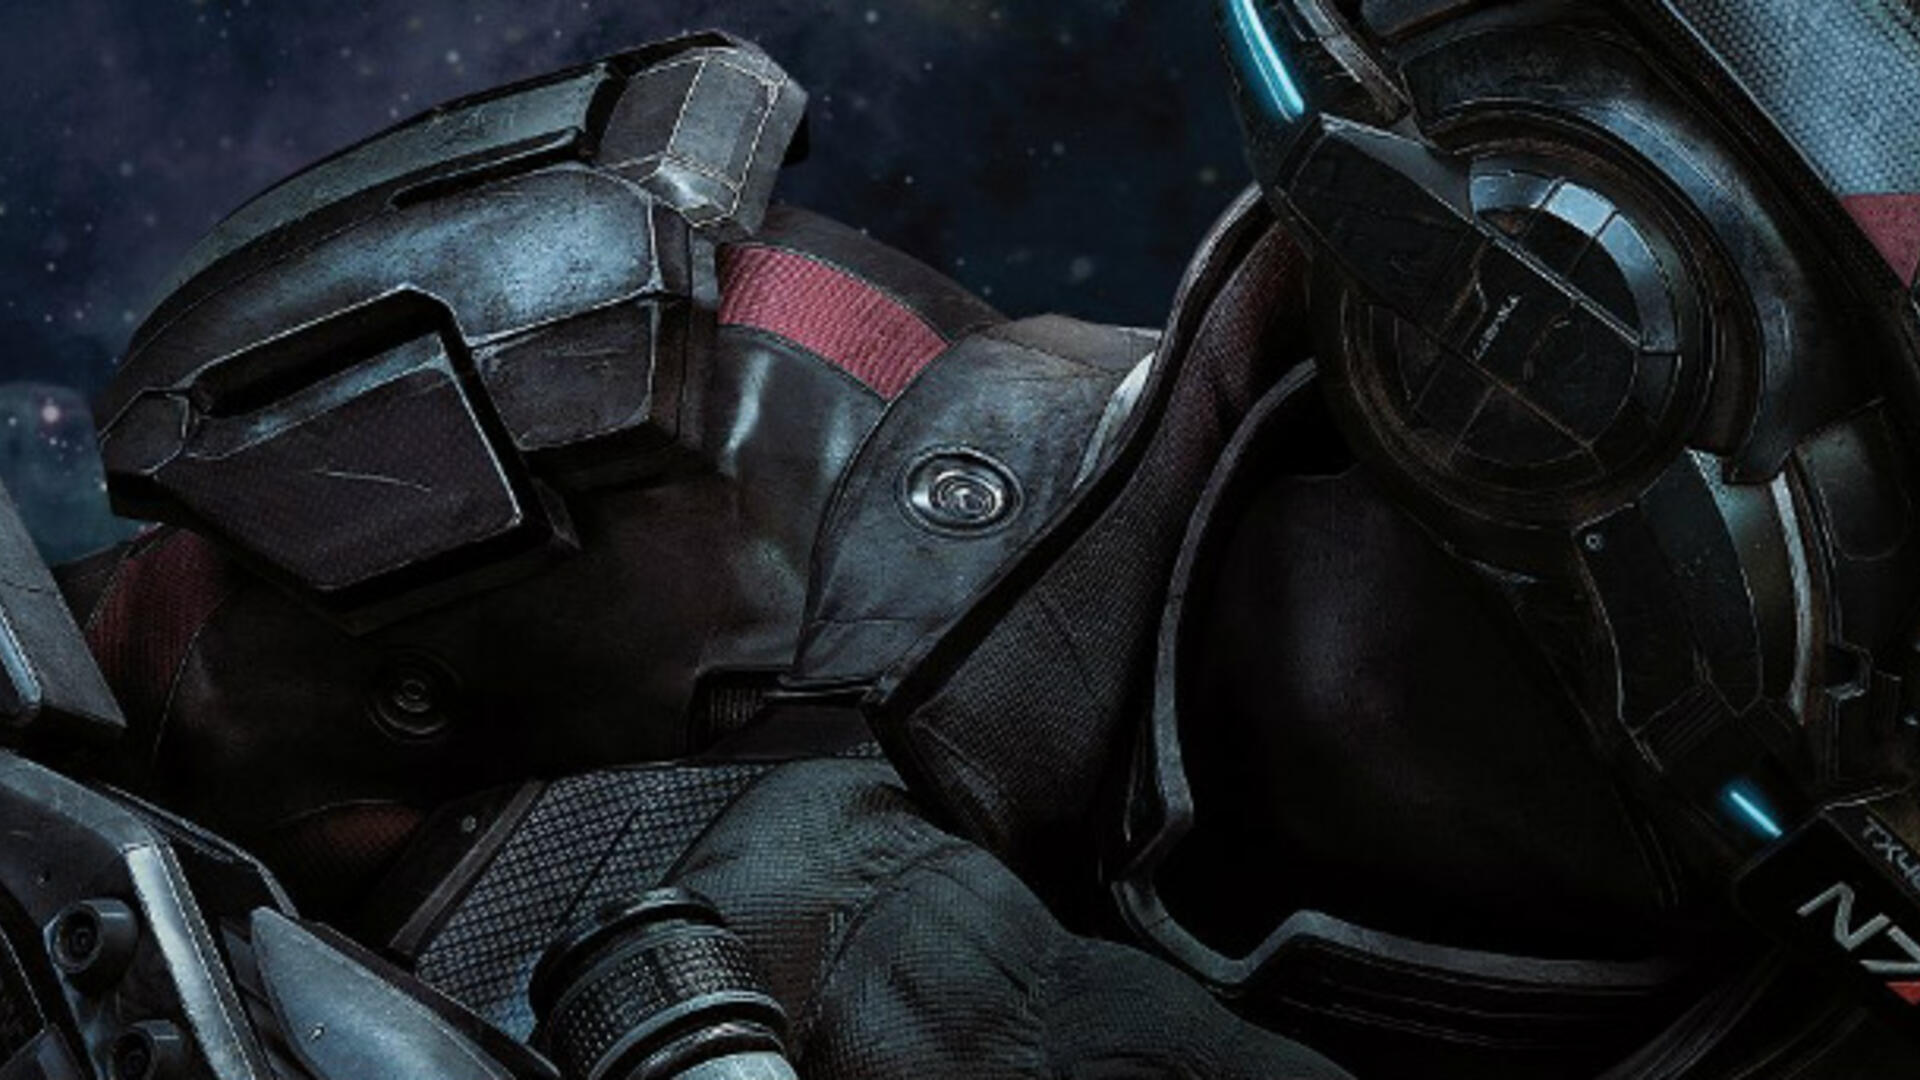 Will Mass Effect Andromeda's Multiplayer Affect Your Ending? Here's What BioWare Says